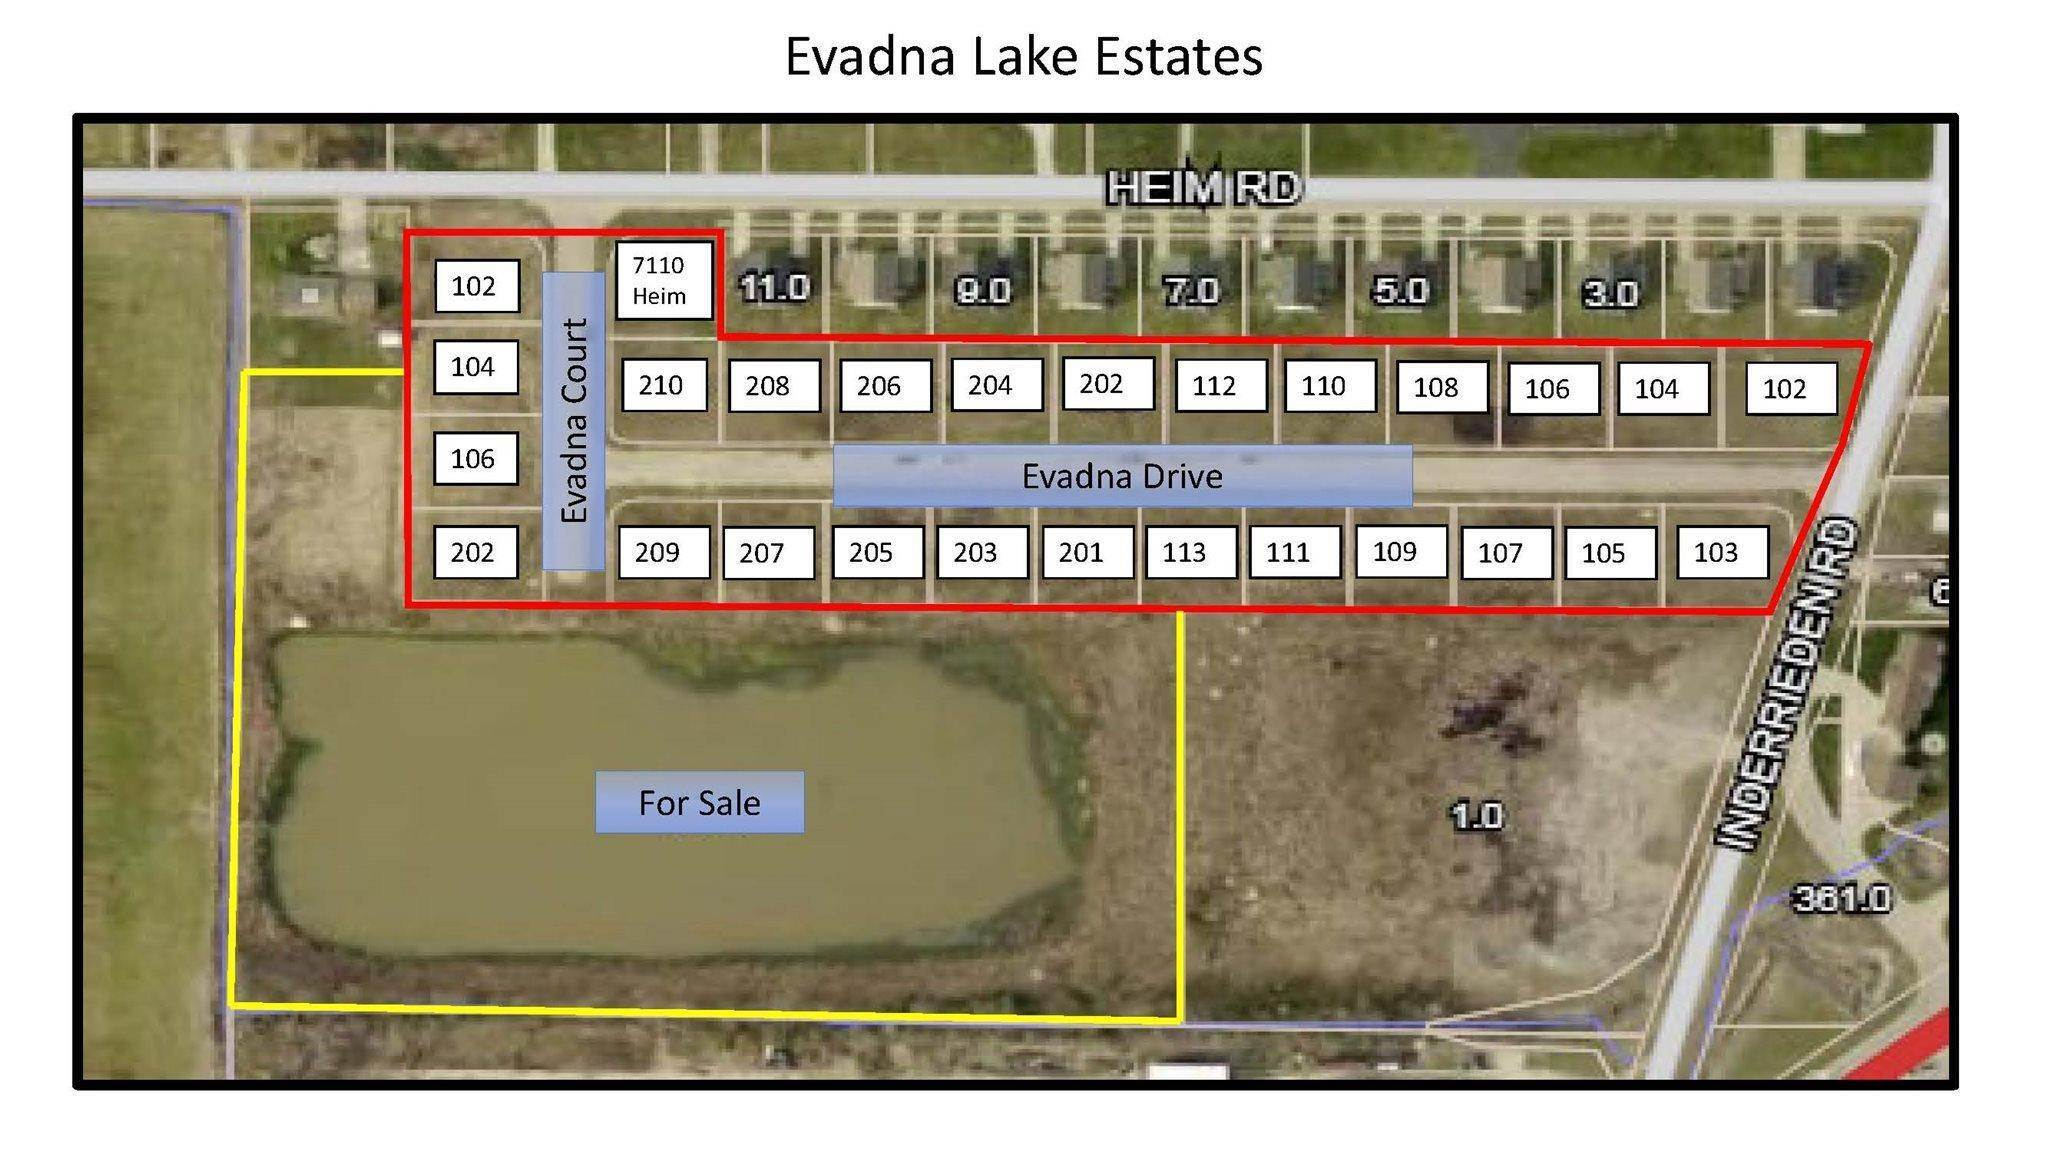 Residential Lots & Land for Sale at 106 Evadna Court Boonville, Indiana 47610 United States